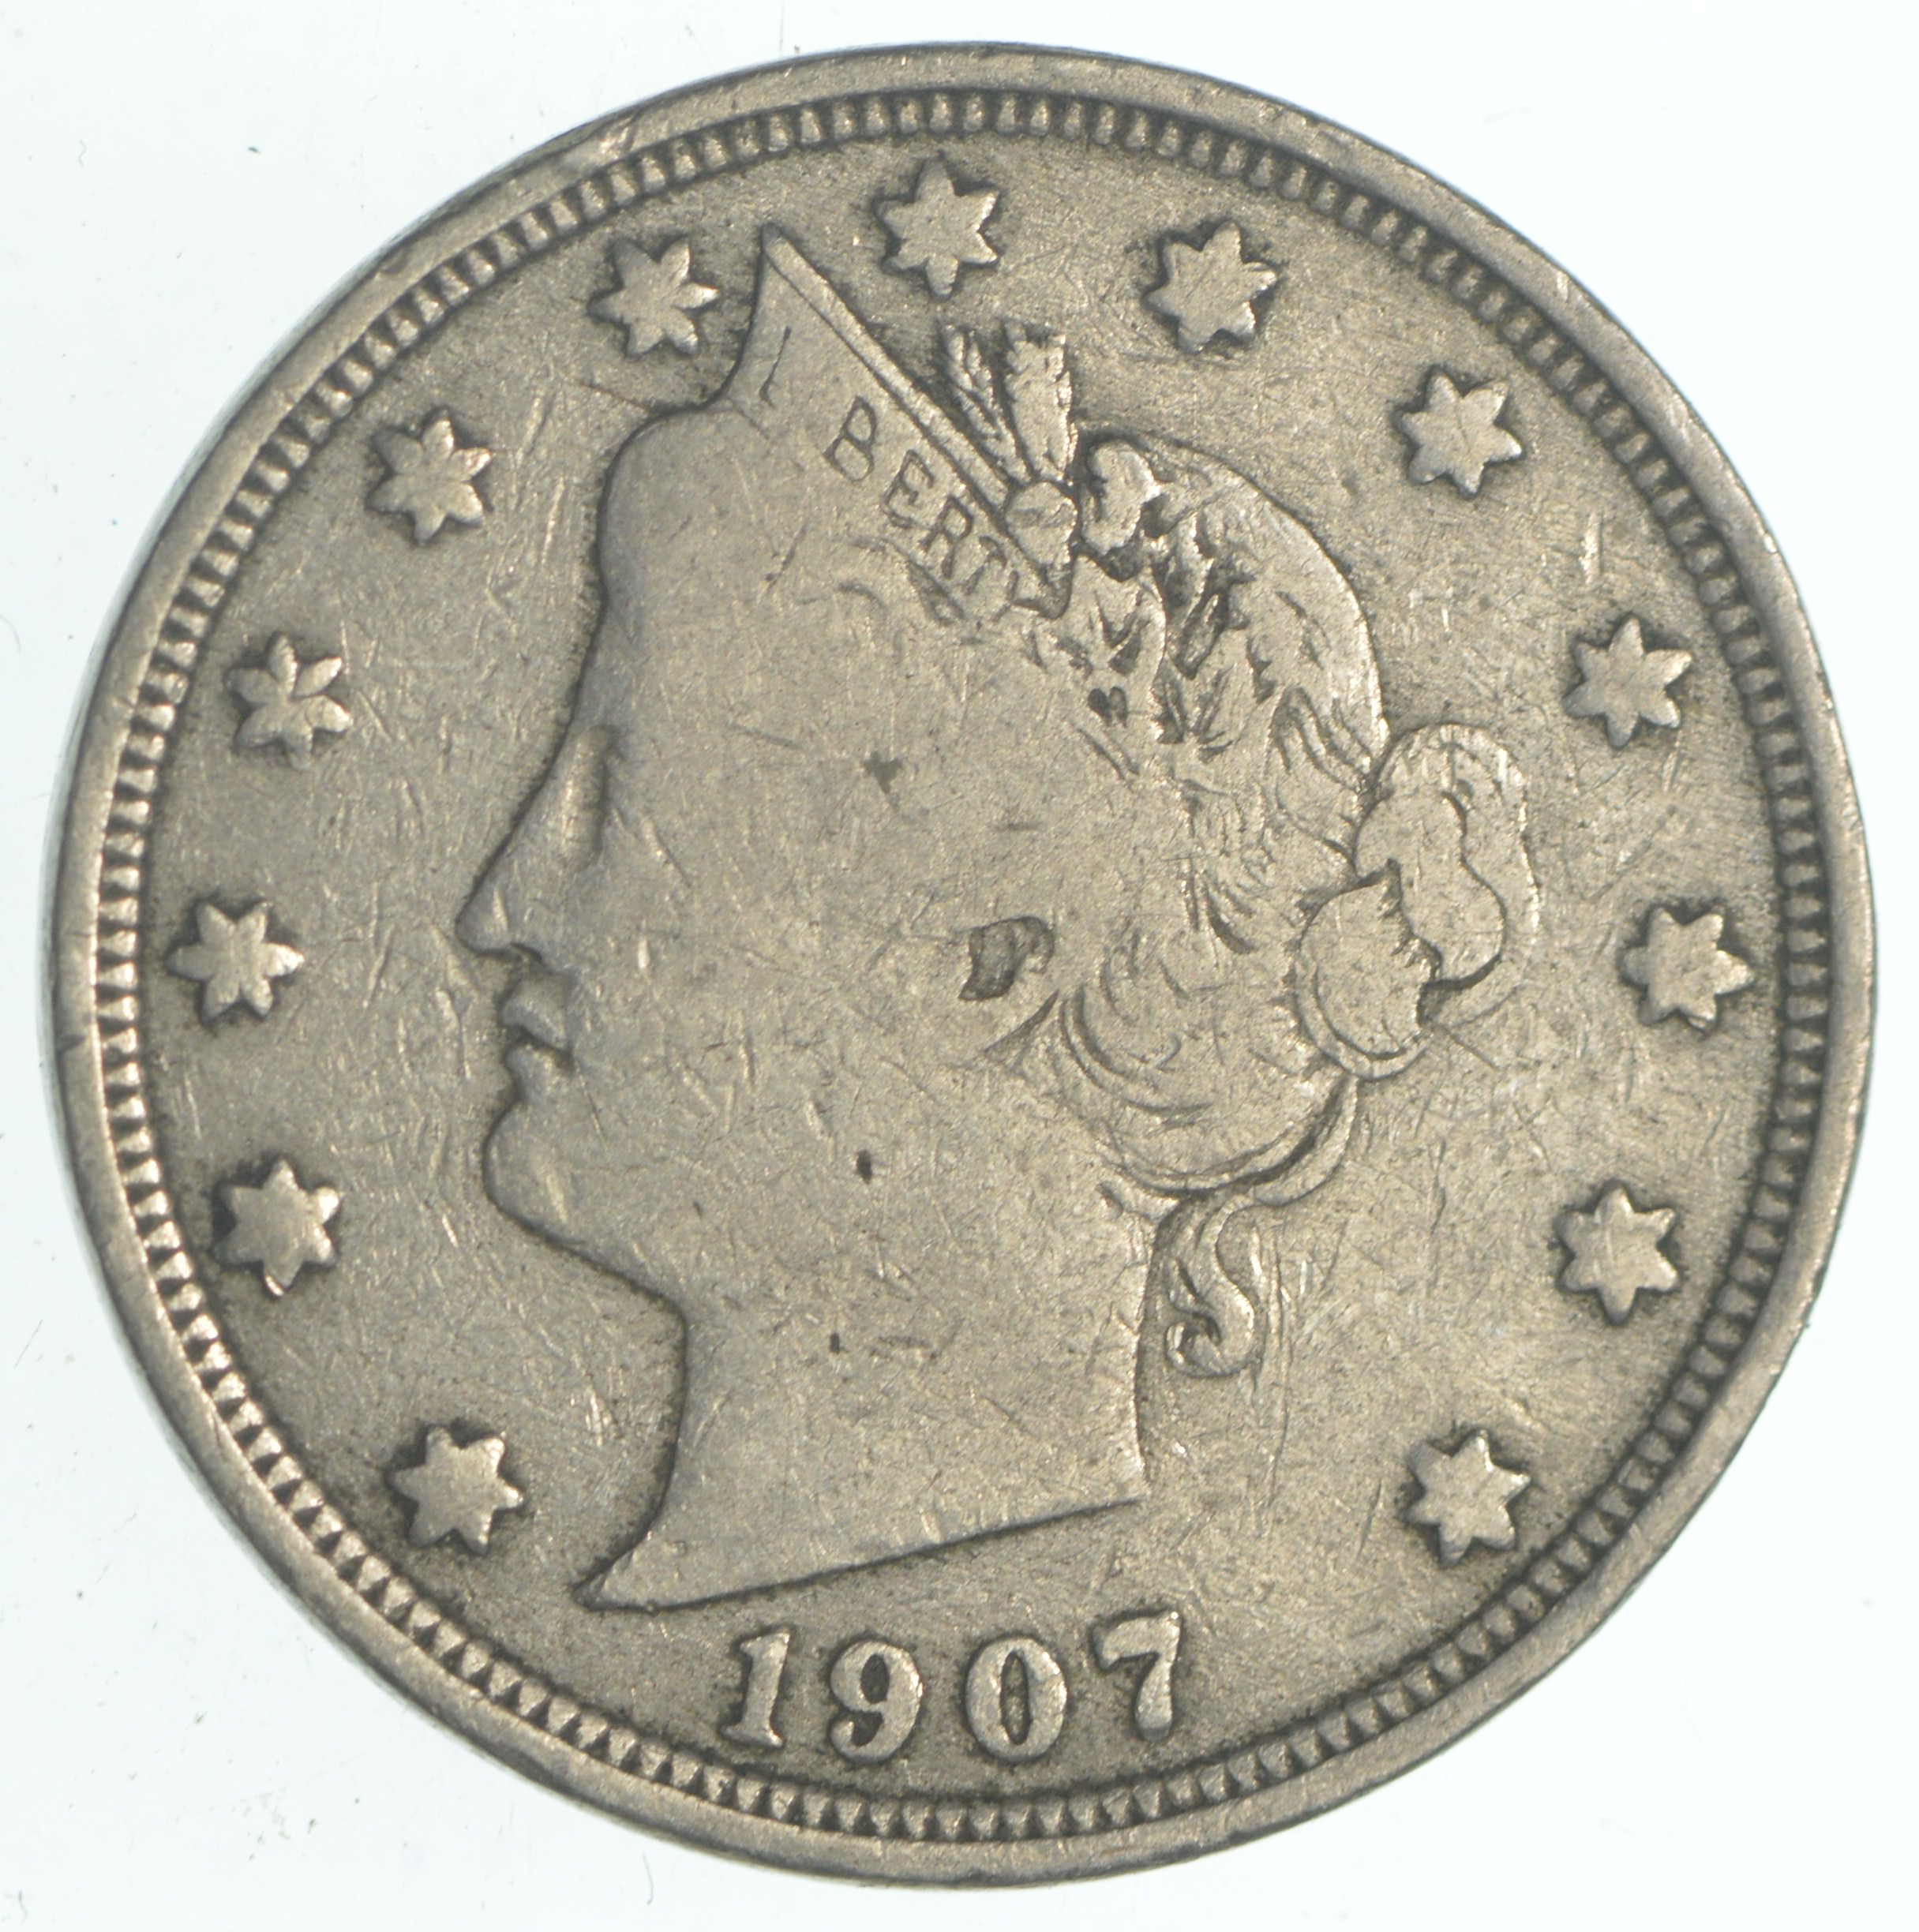 collectable coins value